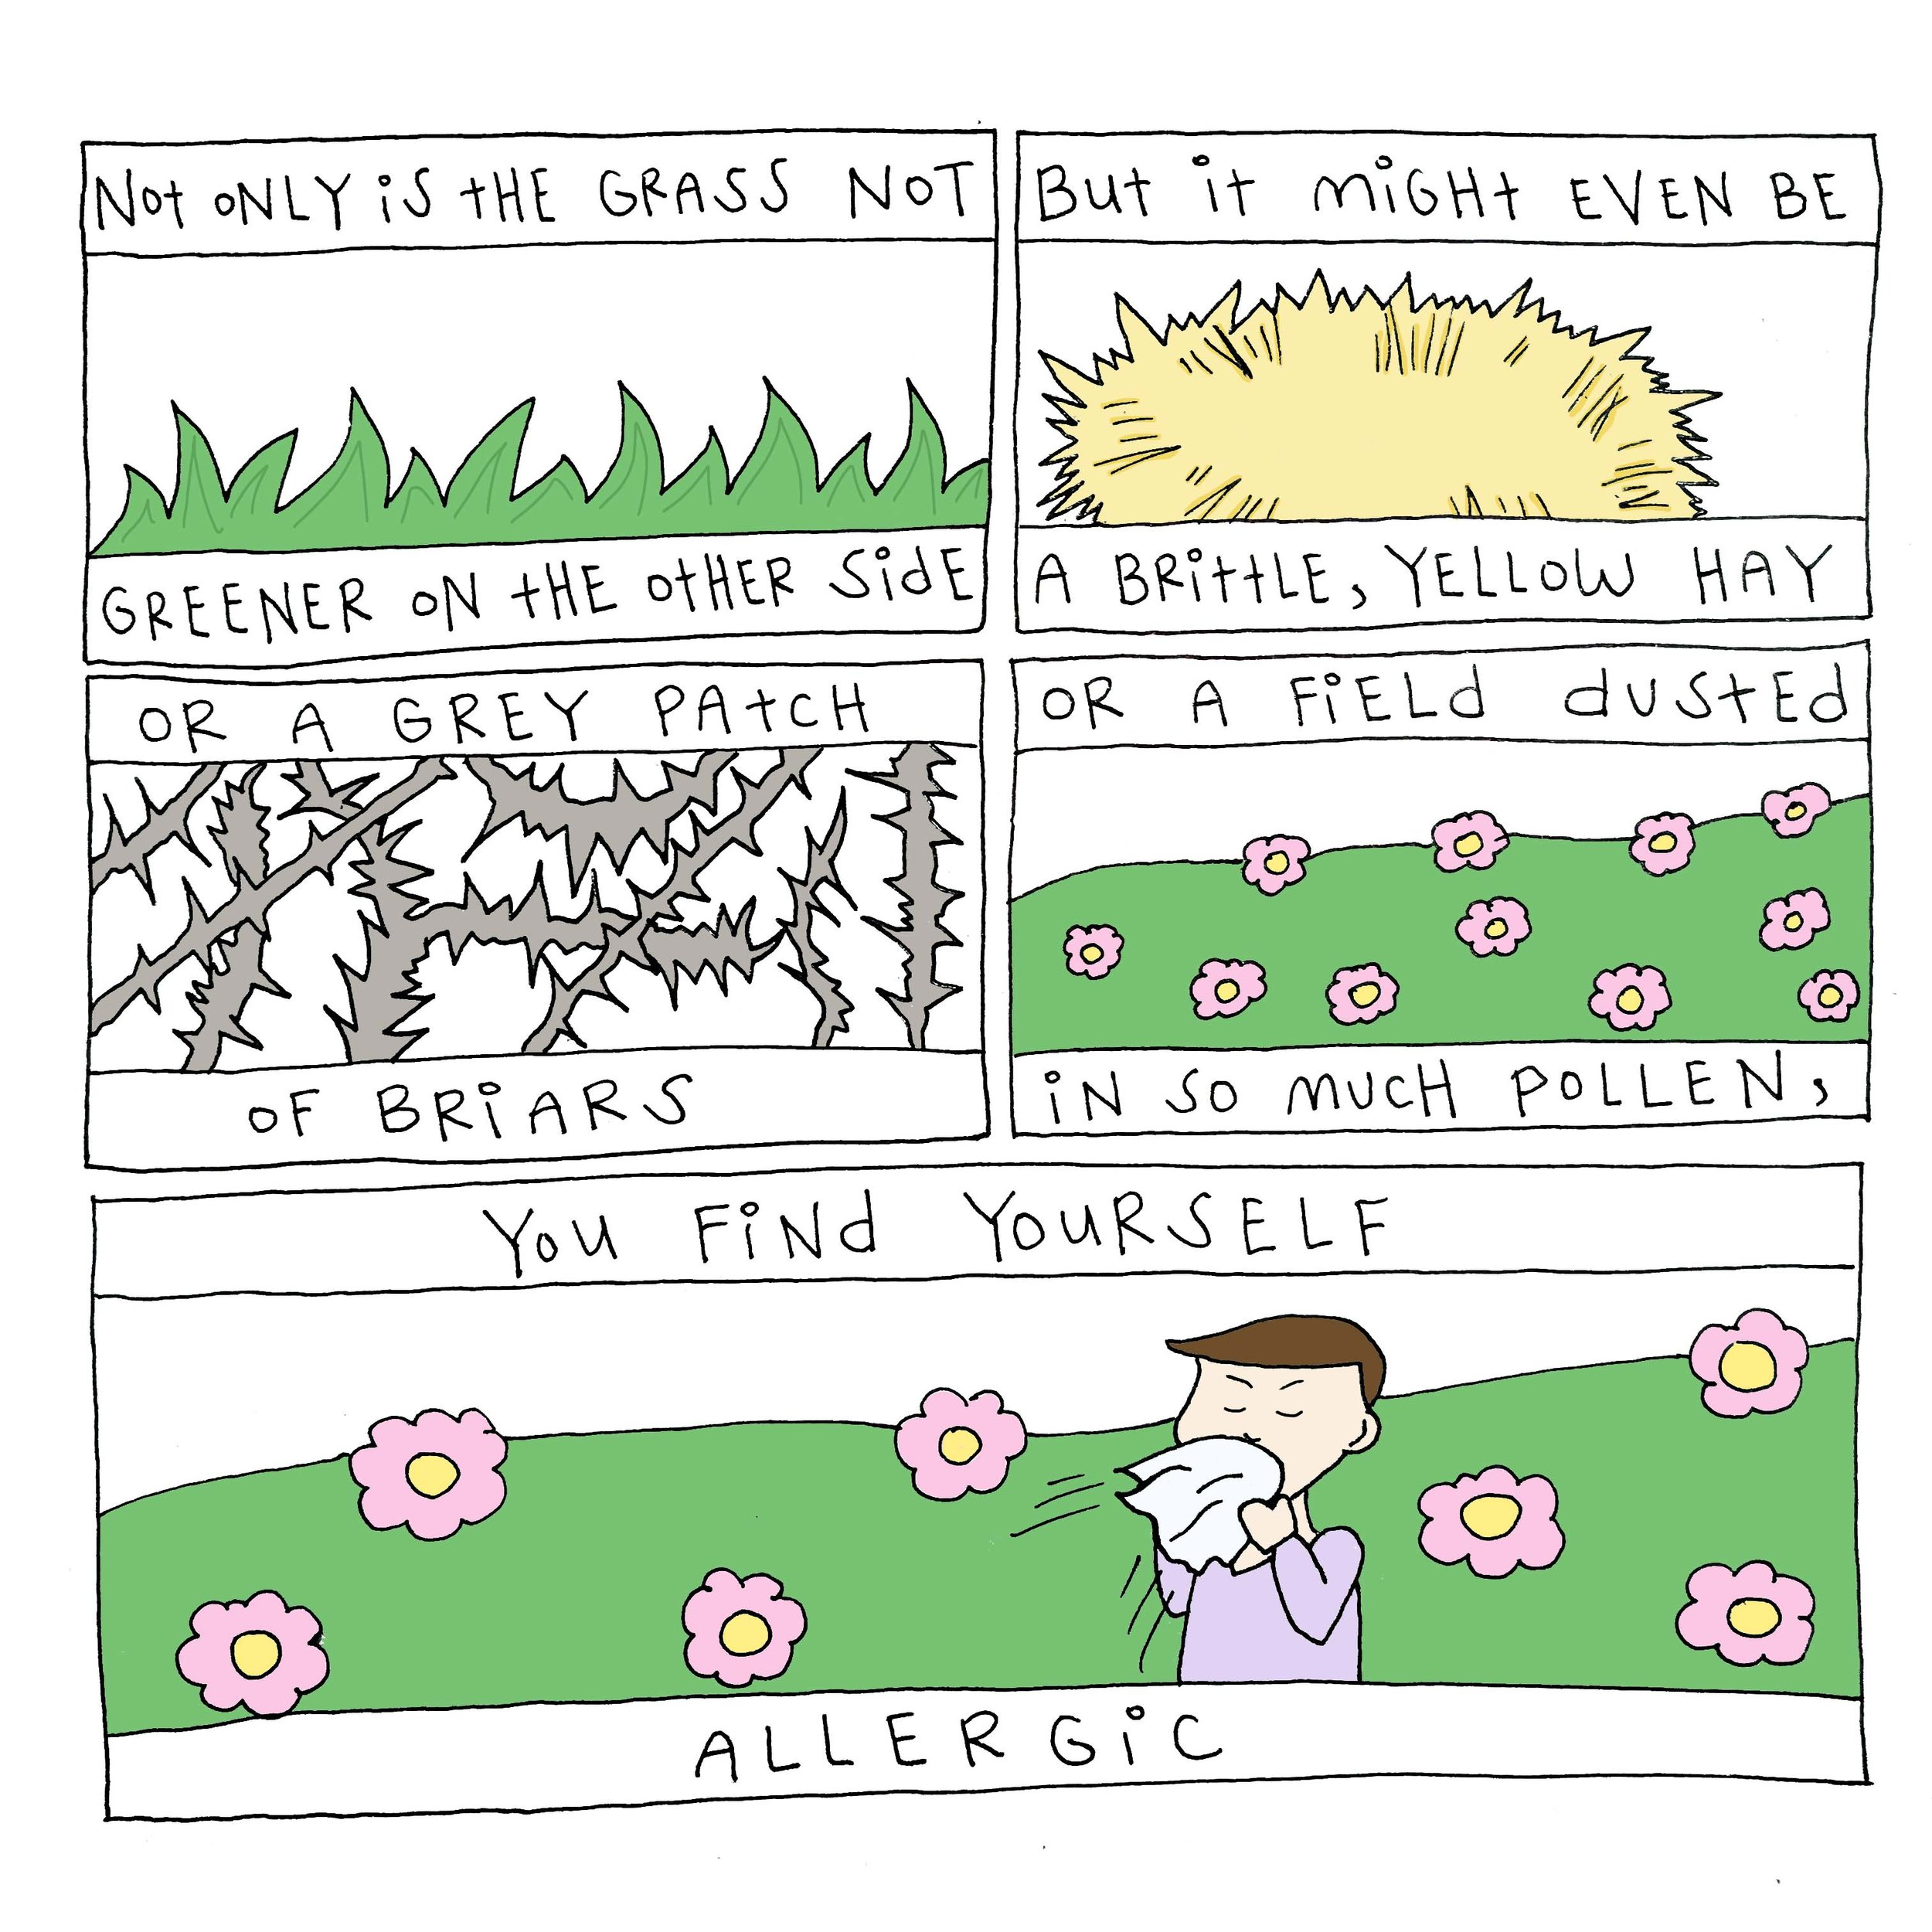 You Find Yourself Allergic.JPG